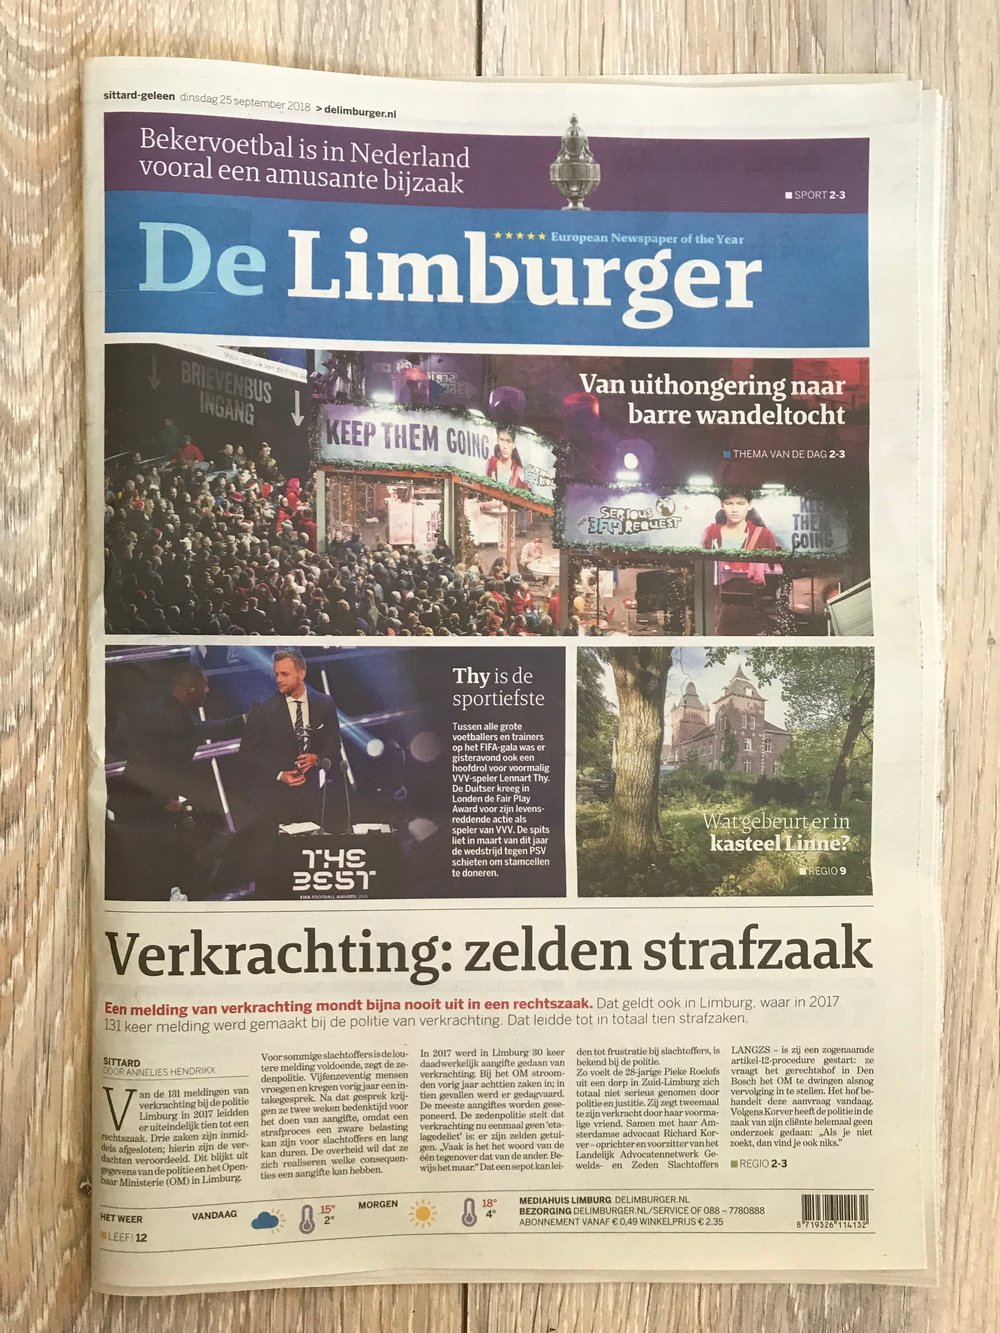 'Verkrachting: zelden strafzaak'  (Rape: rarely a criminal case) covers rape conviction statistics in my area, my court case against youtuber Exurb1a, and the police failure that happened in it.